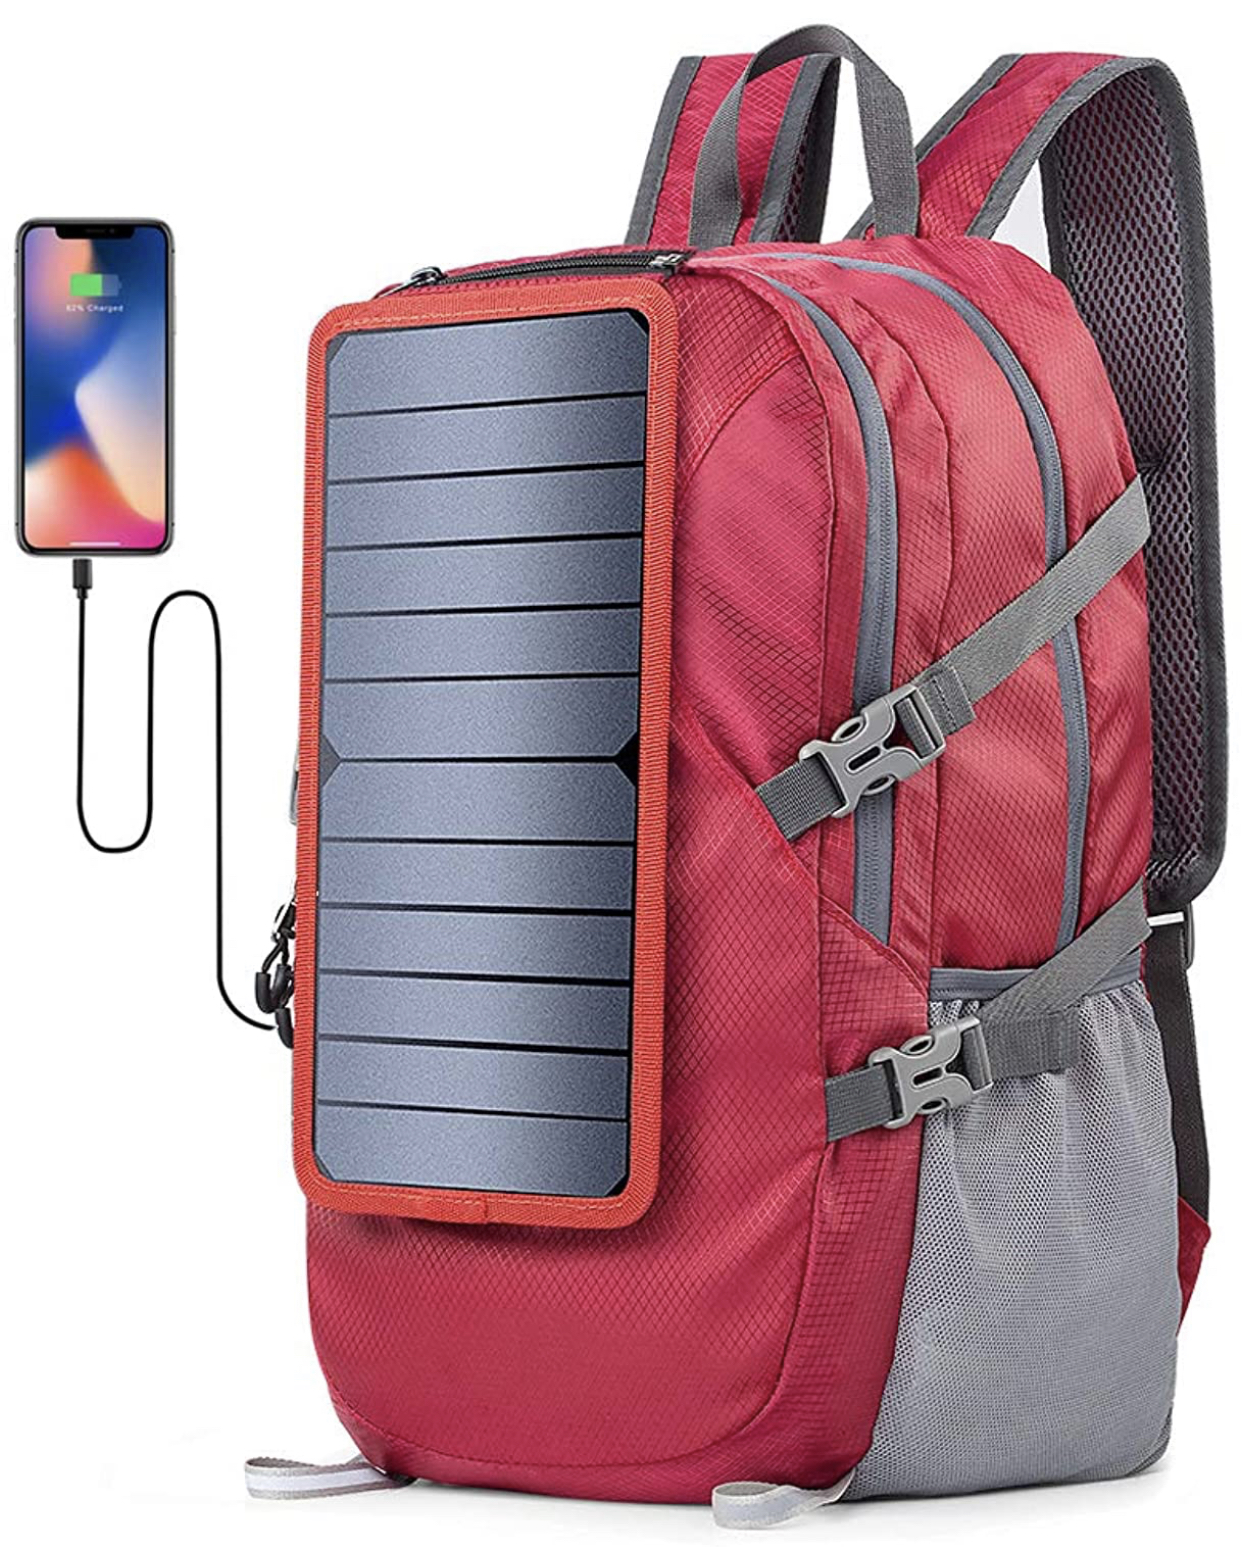 A display of the Eceen Solar Foldable Backpack